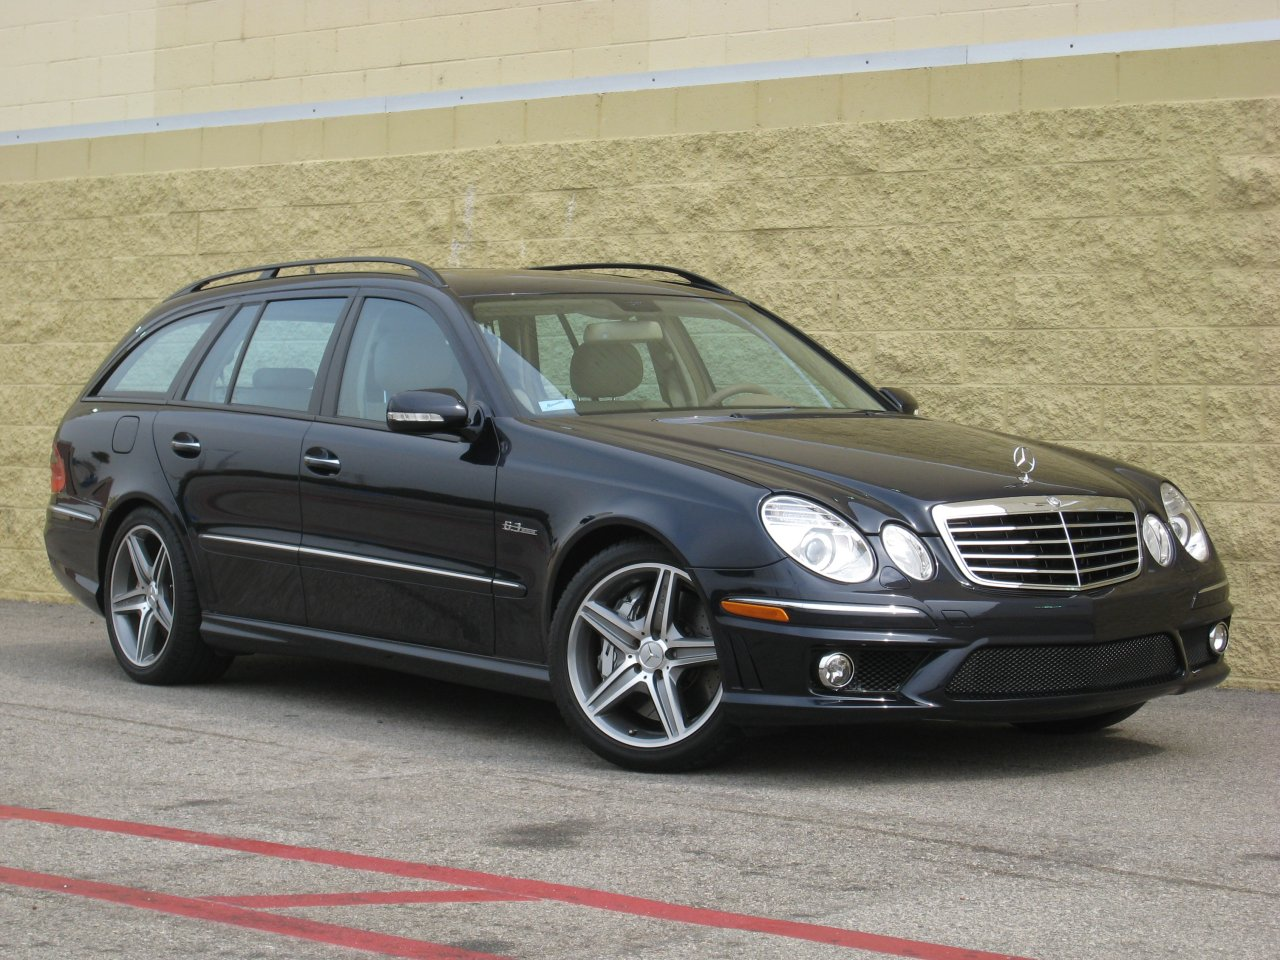 2007 mercedes benz e class pictures cargurus for Mercedes benz wagons